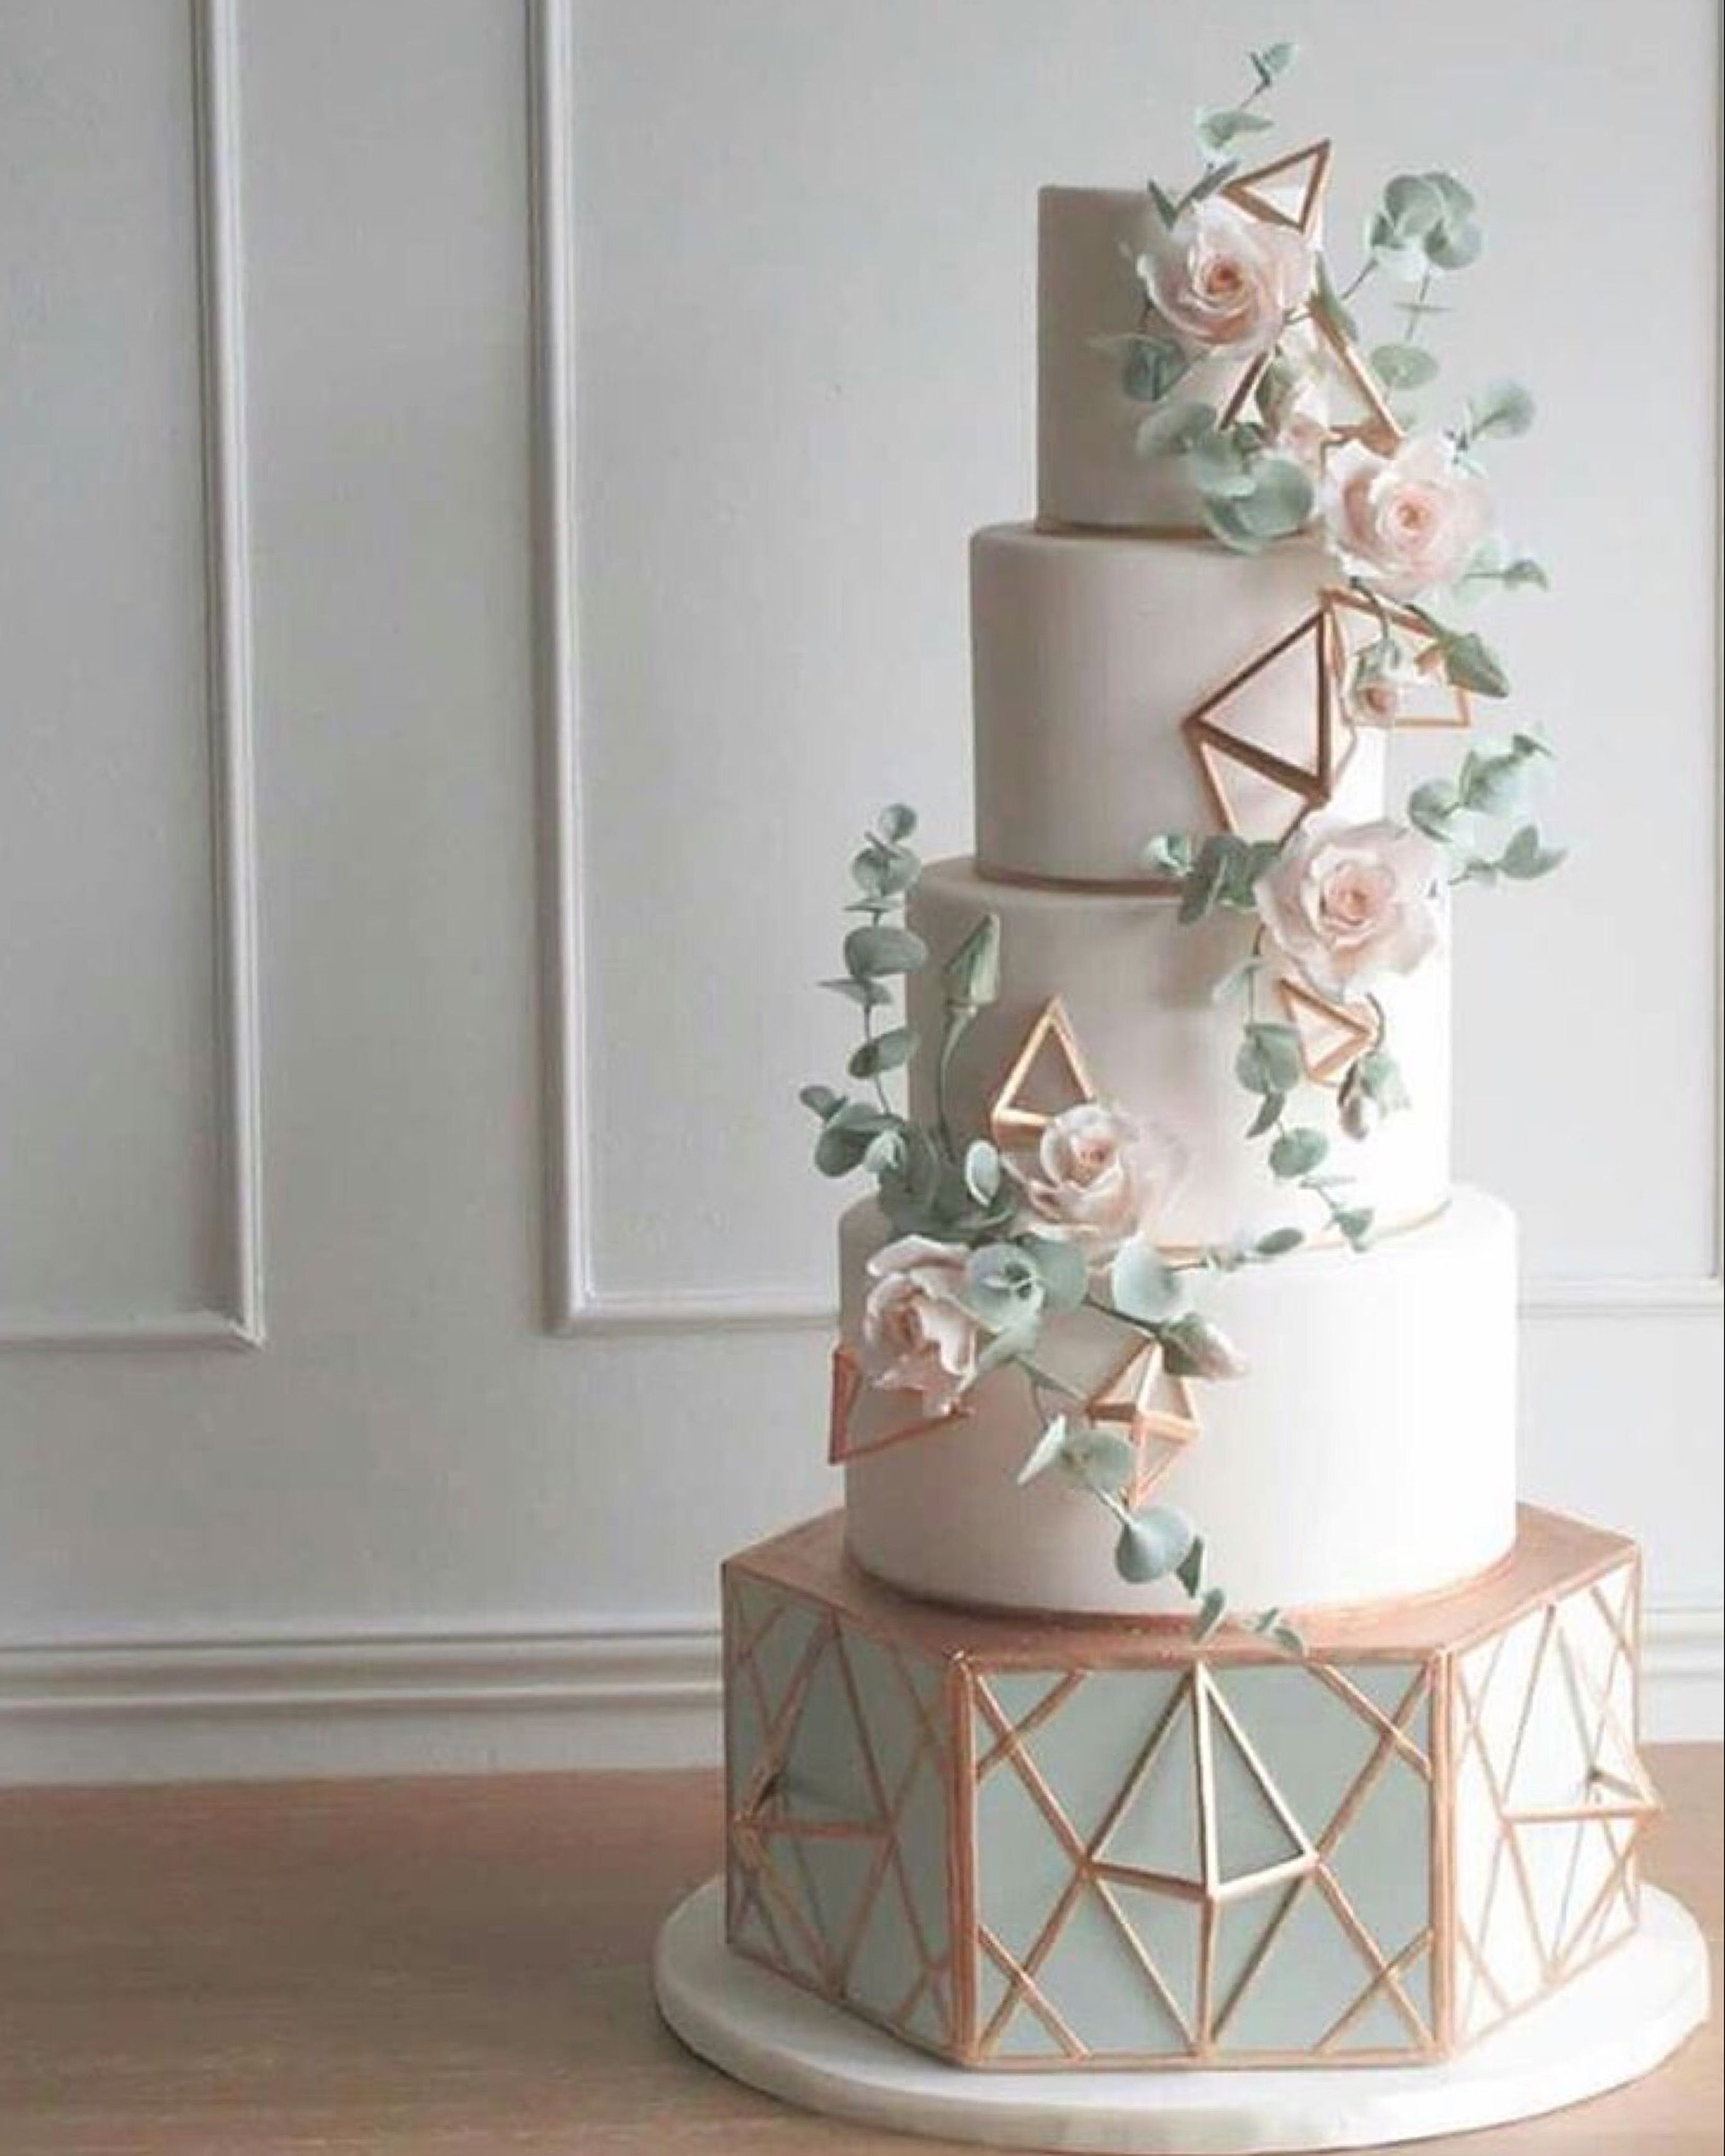 Wedding Cakes Inspired By China Patterns: We Love This Geometric Cake, It's So On Trend!